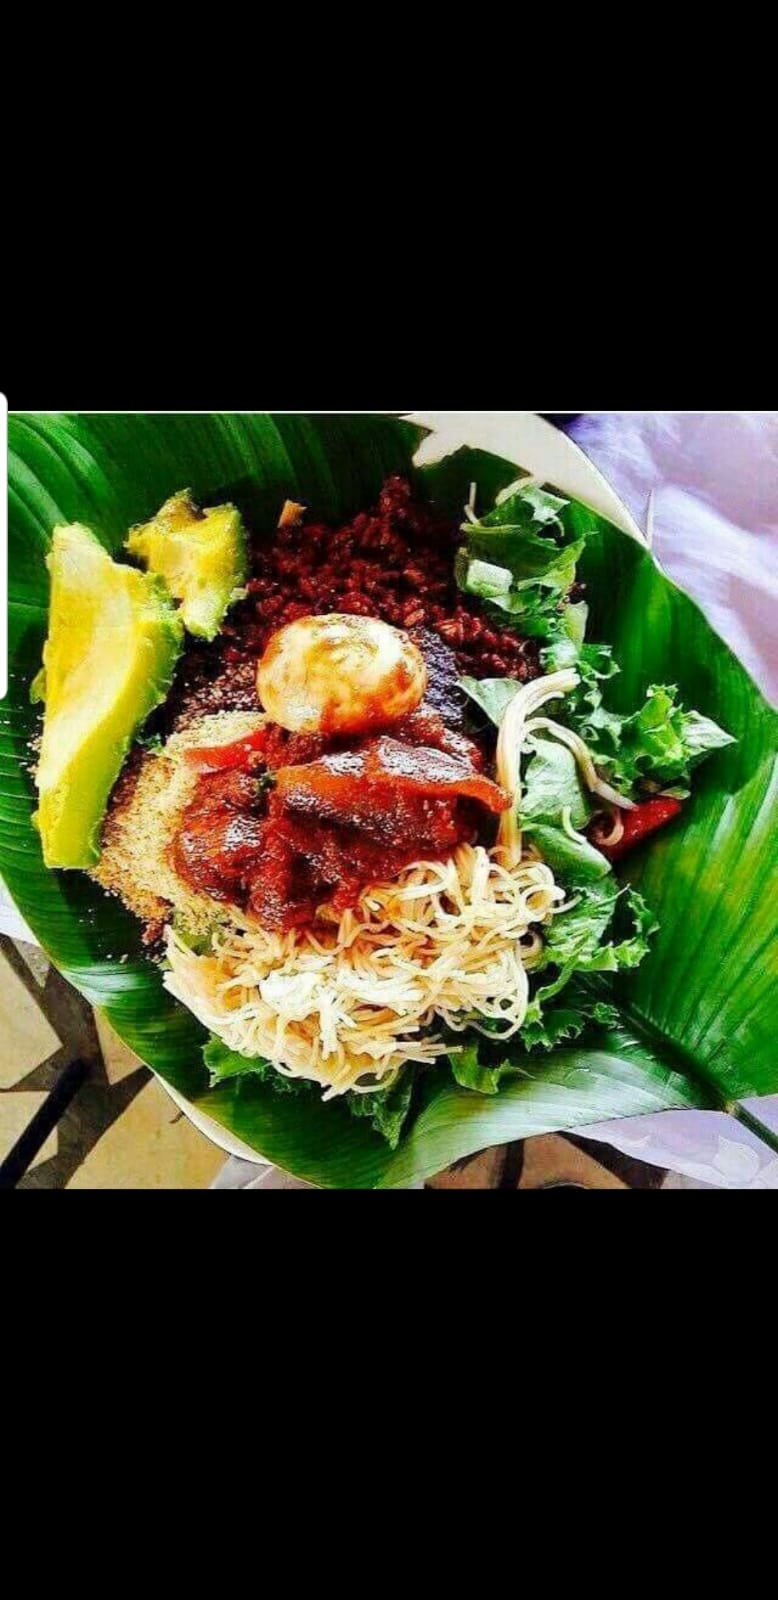 Waakye(Rice & Beans | Gari, Sphagetti| Fried Fish | Eggs| Stew